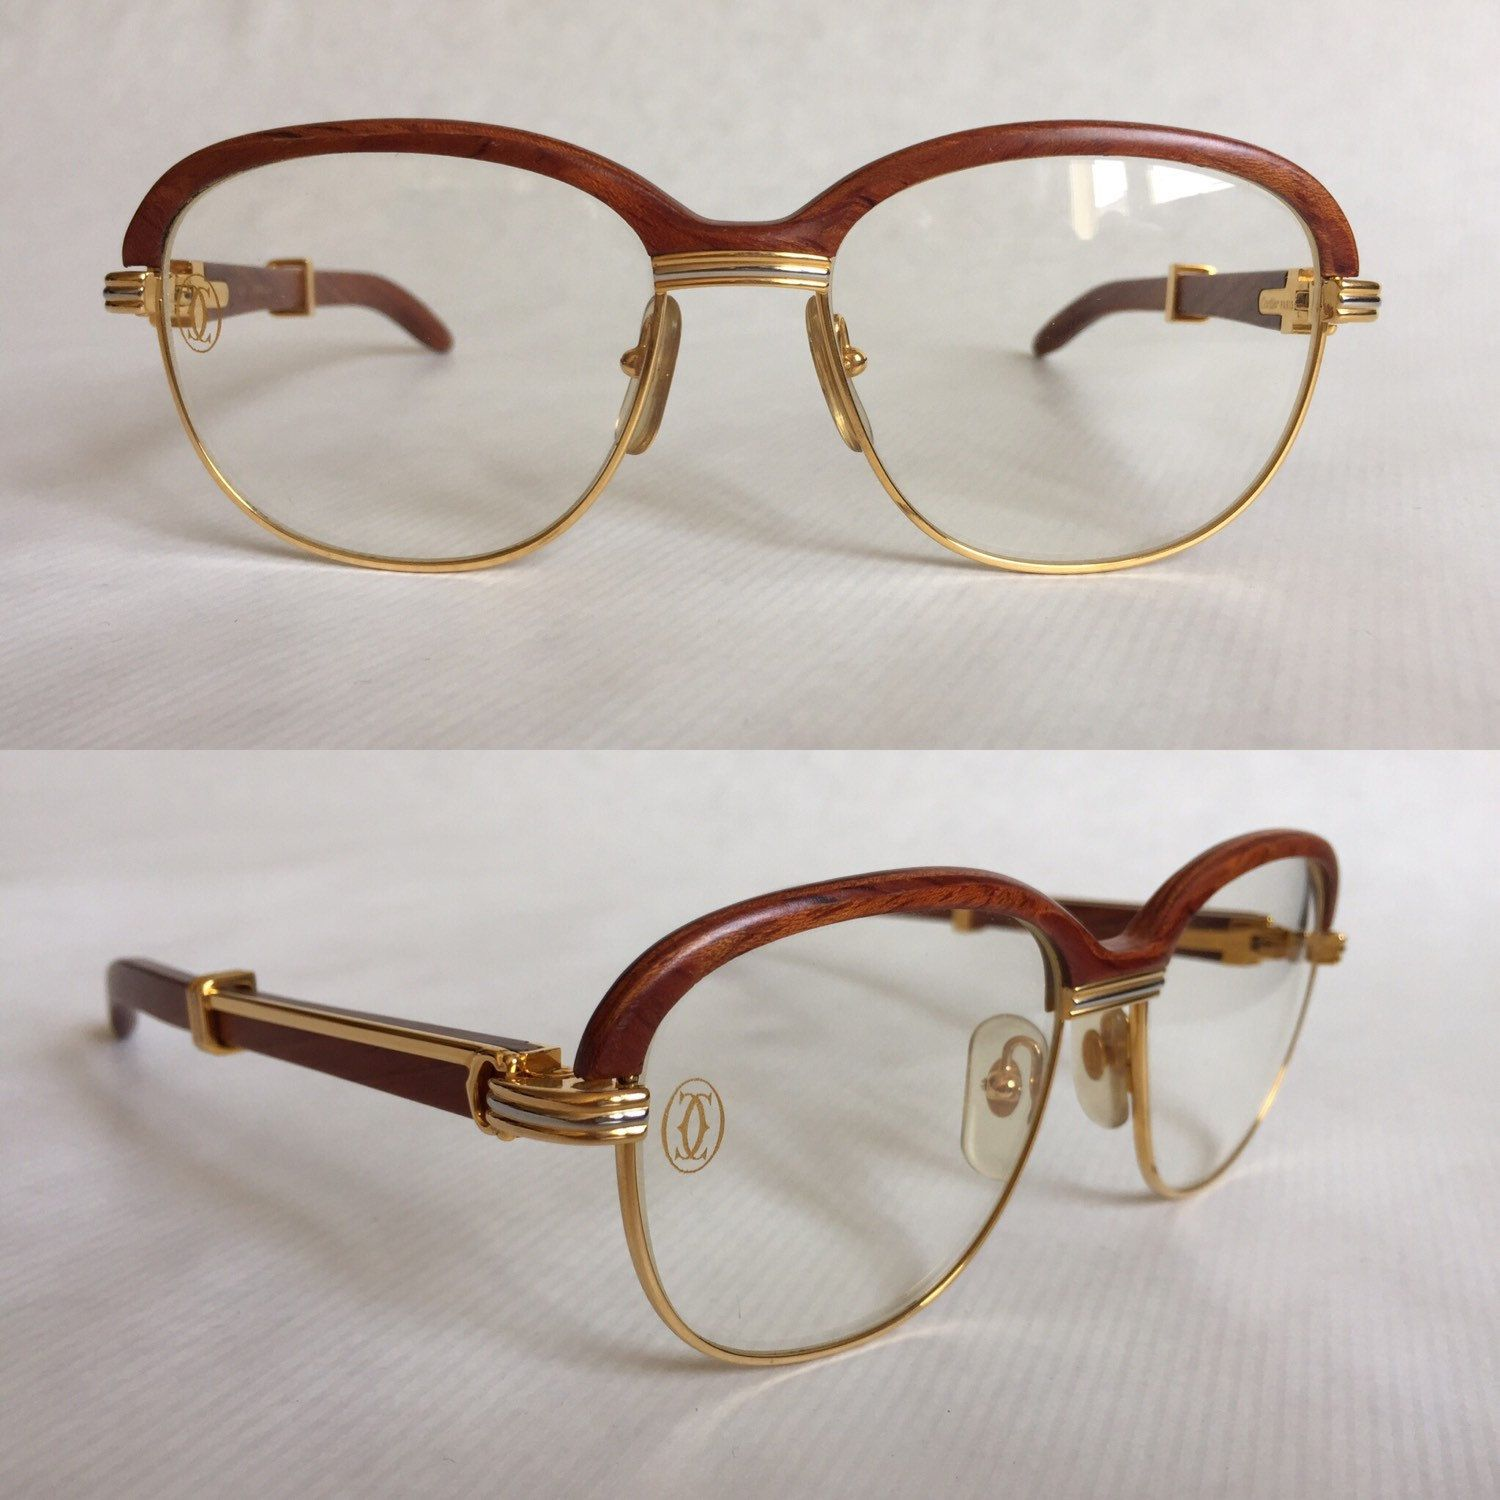 8ee9570128 Cartier Square Brushed Pale Gold Eyeglasses T8100454 Frames Authentic  France New